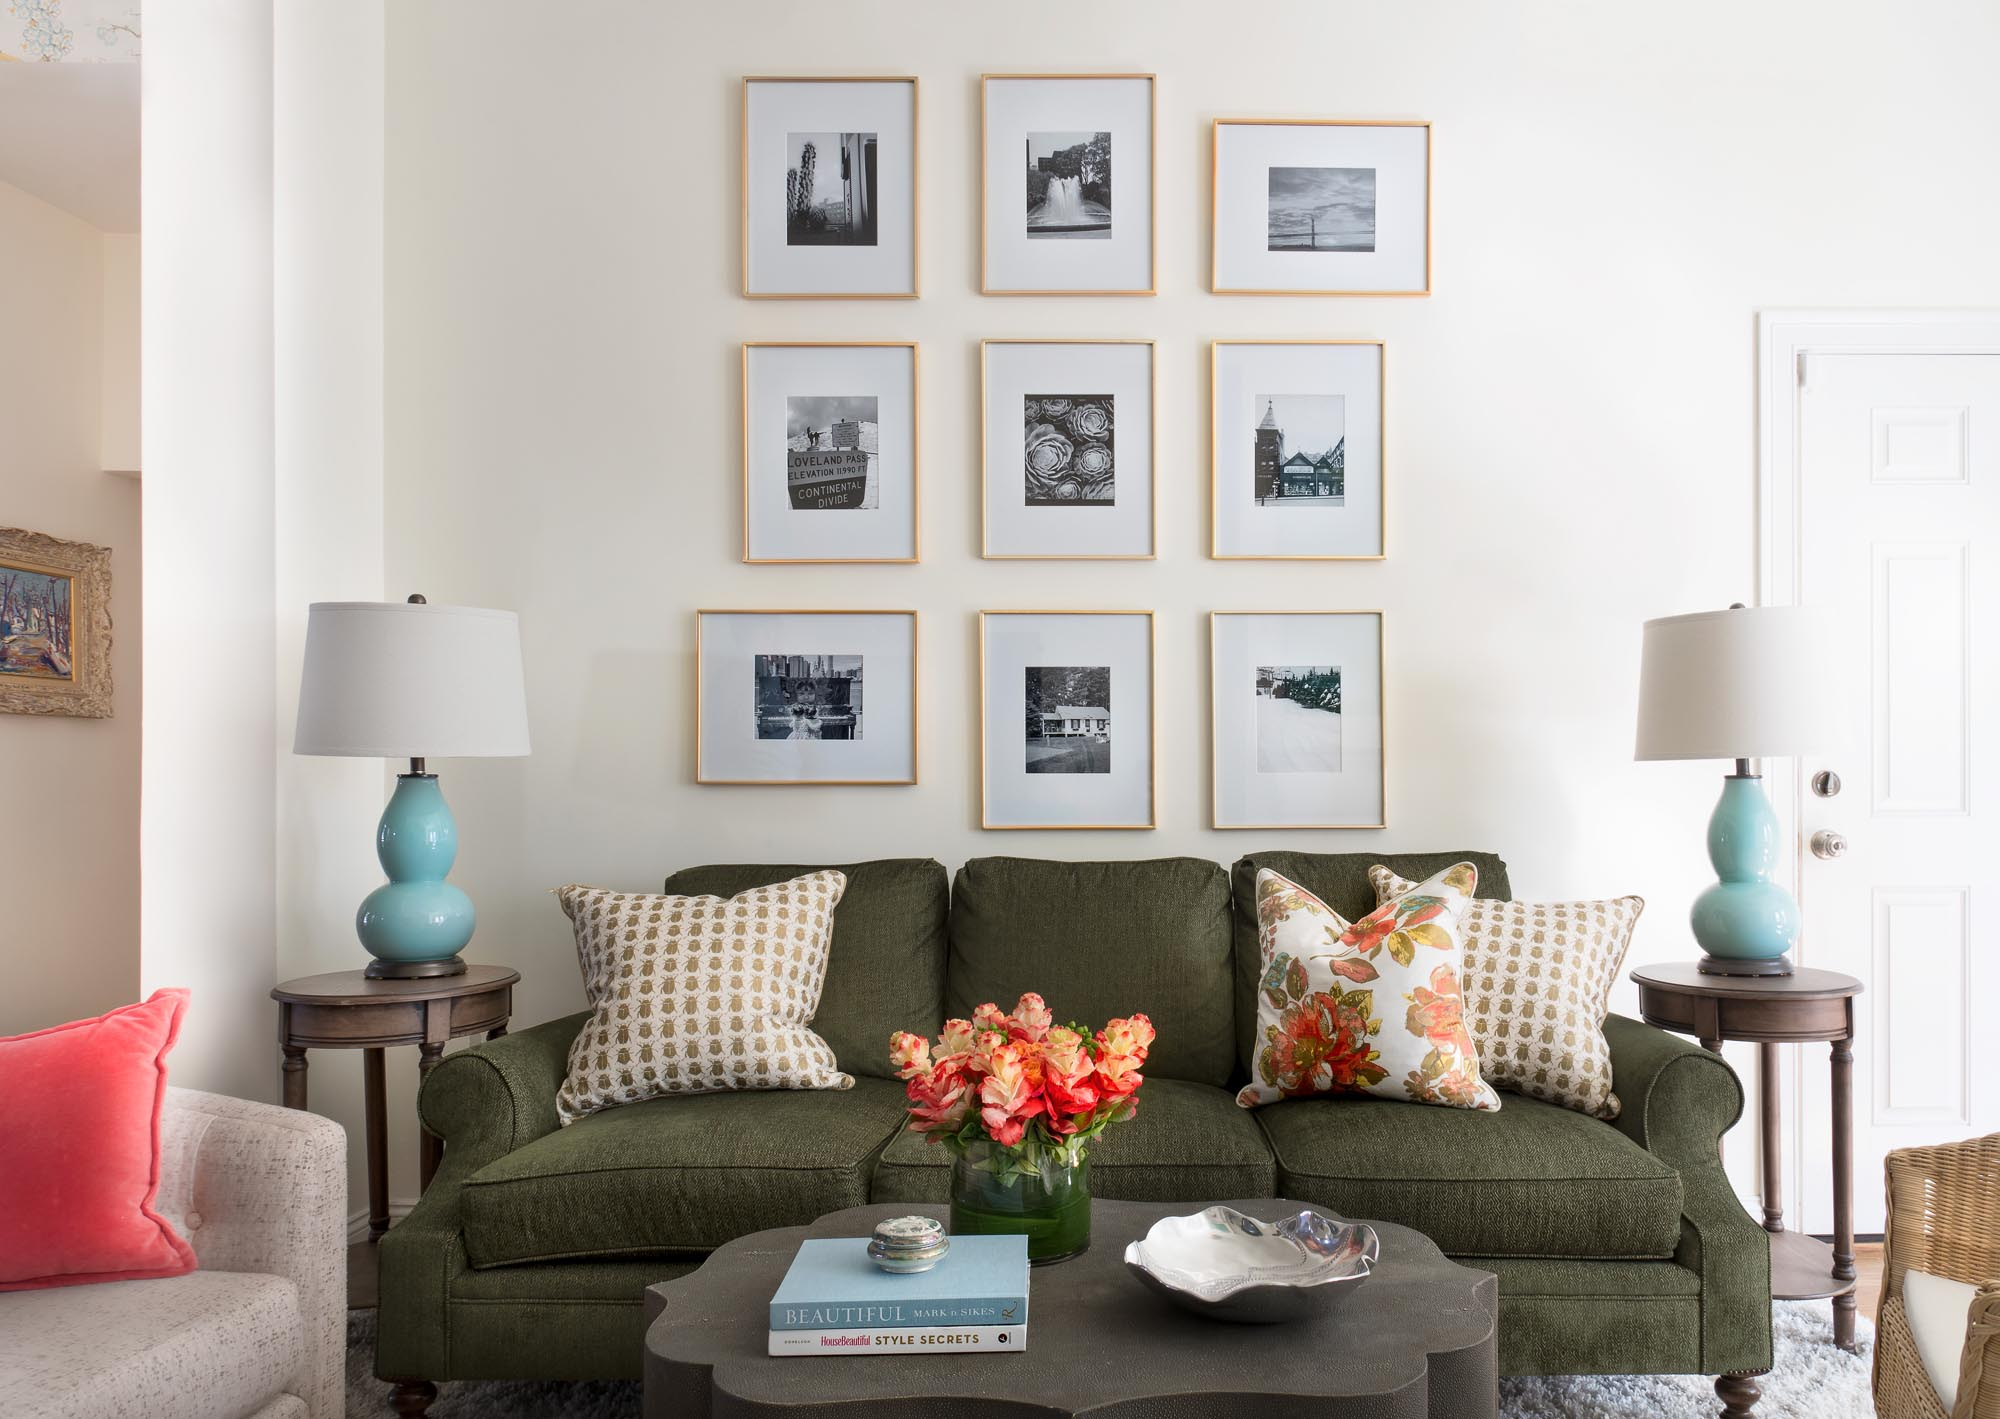 Living room area with framed prints on the wall